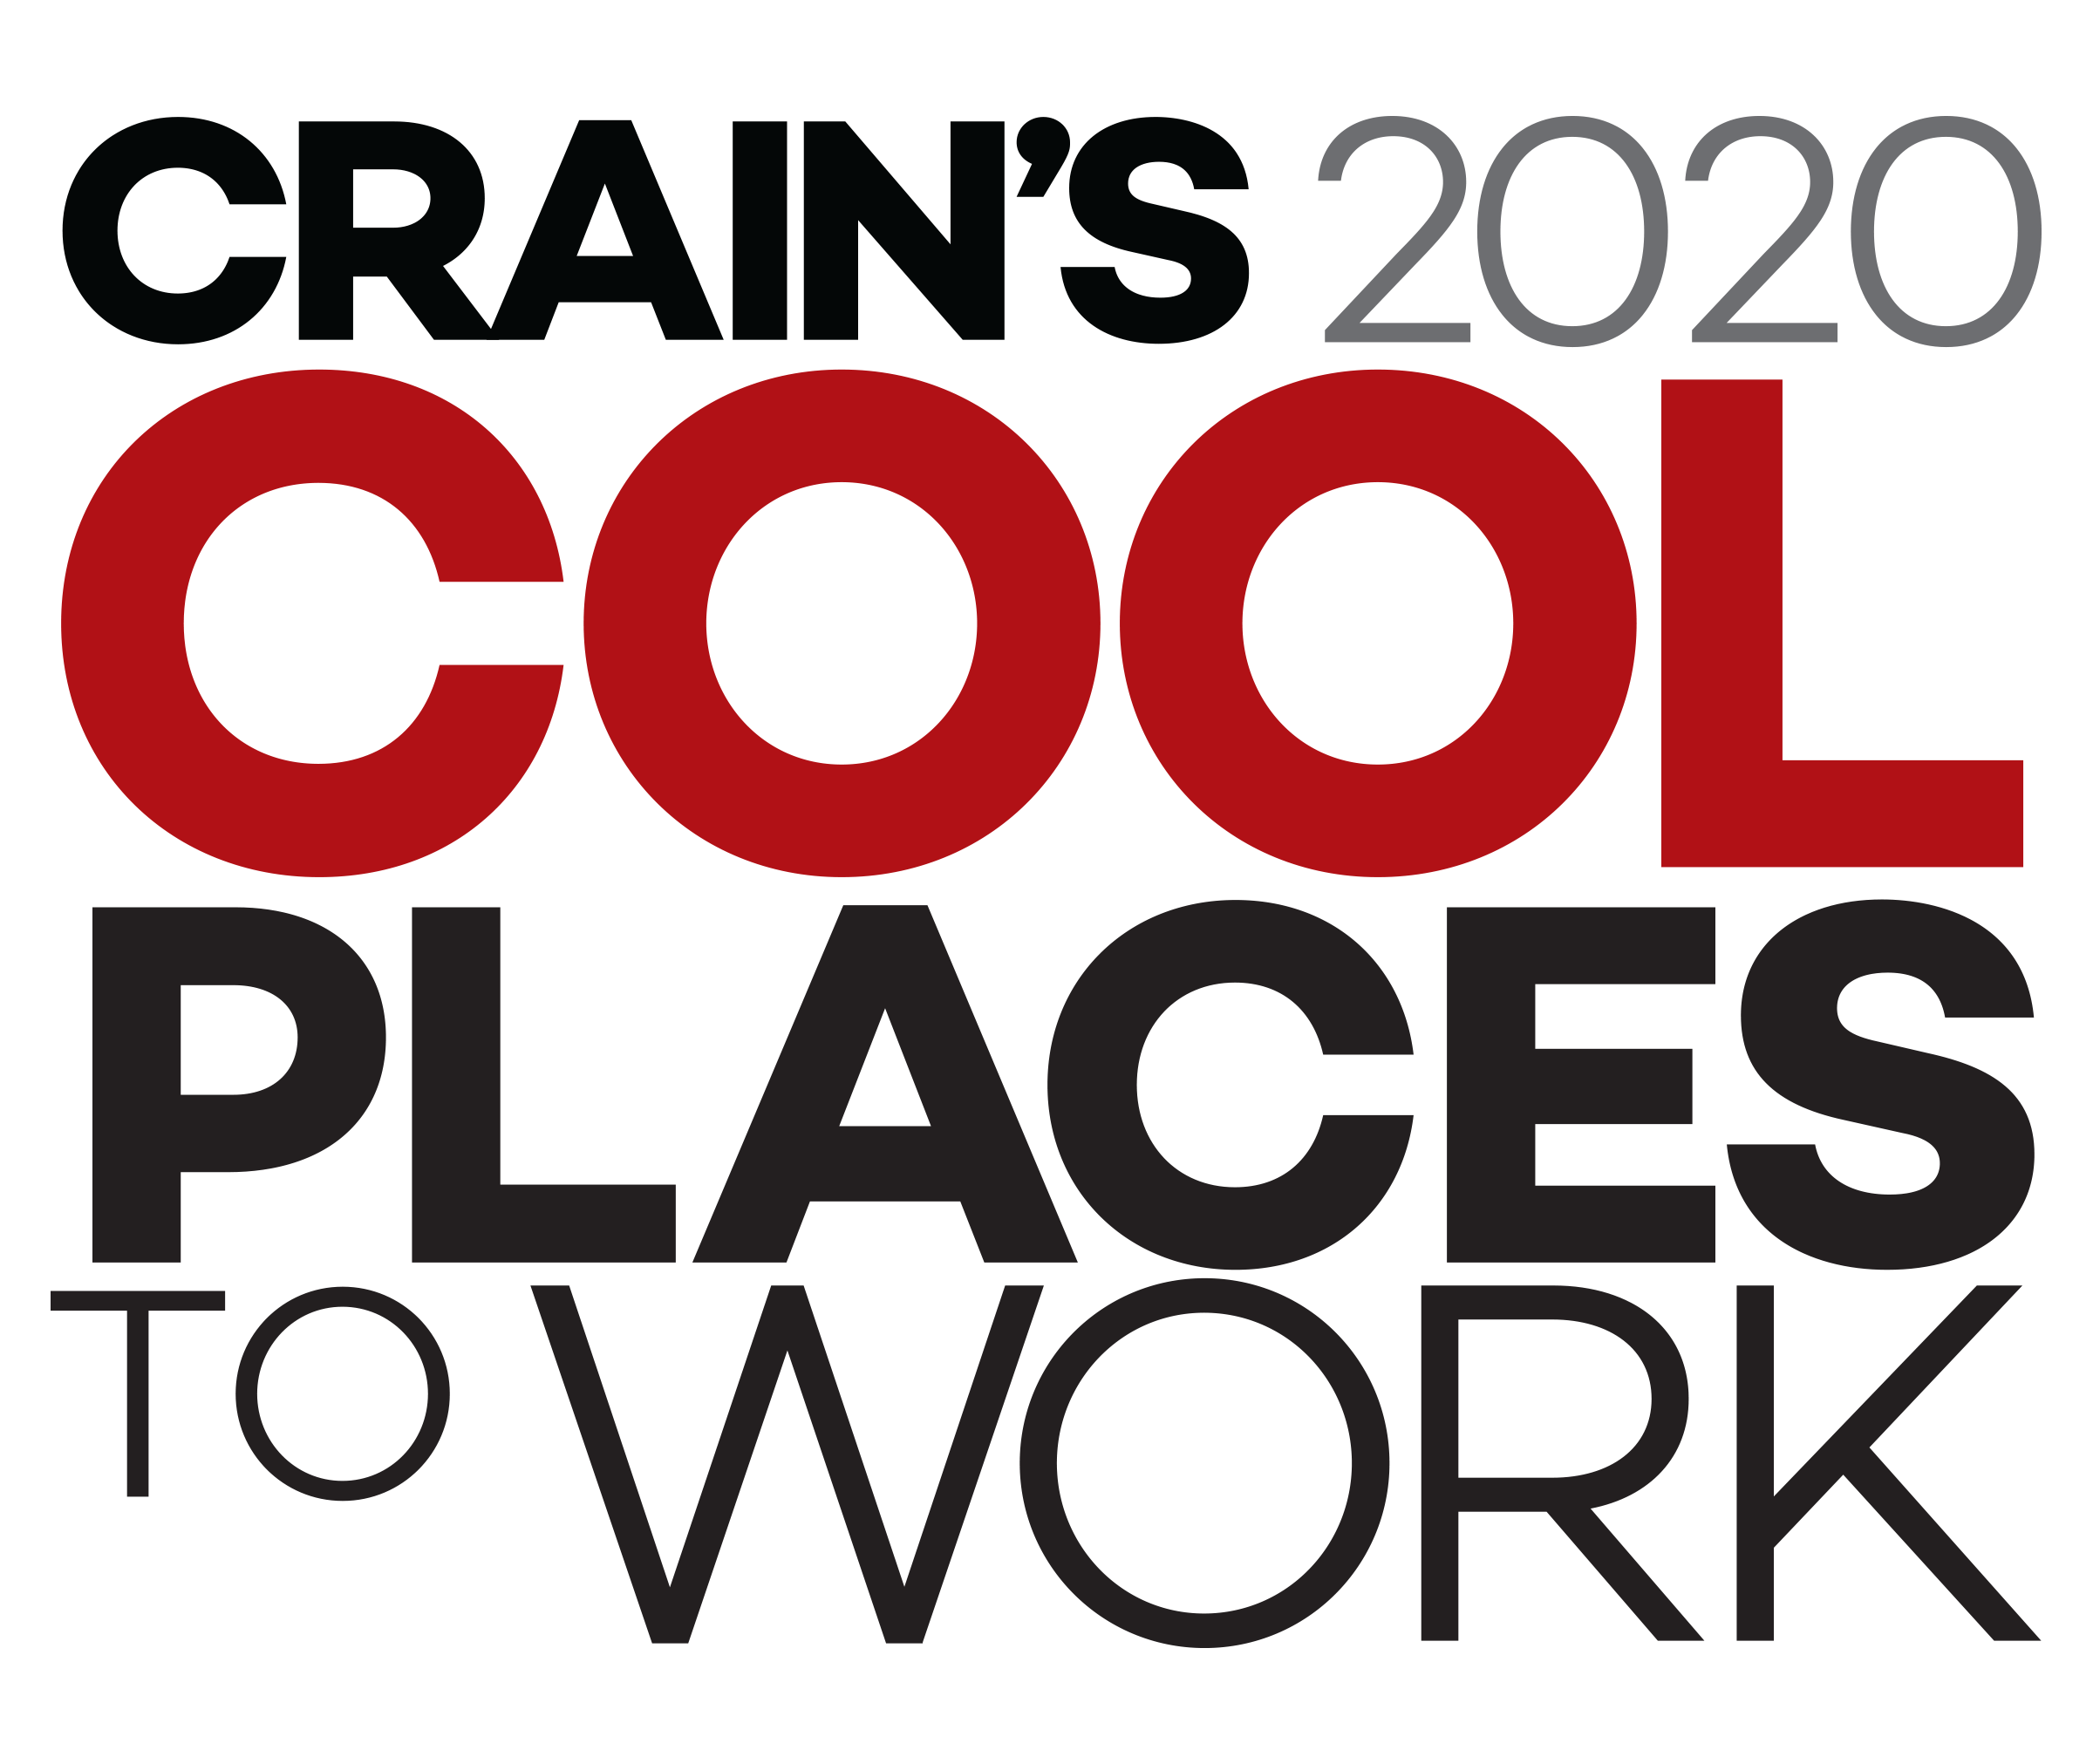 Crain's Cool Place to Work